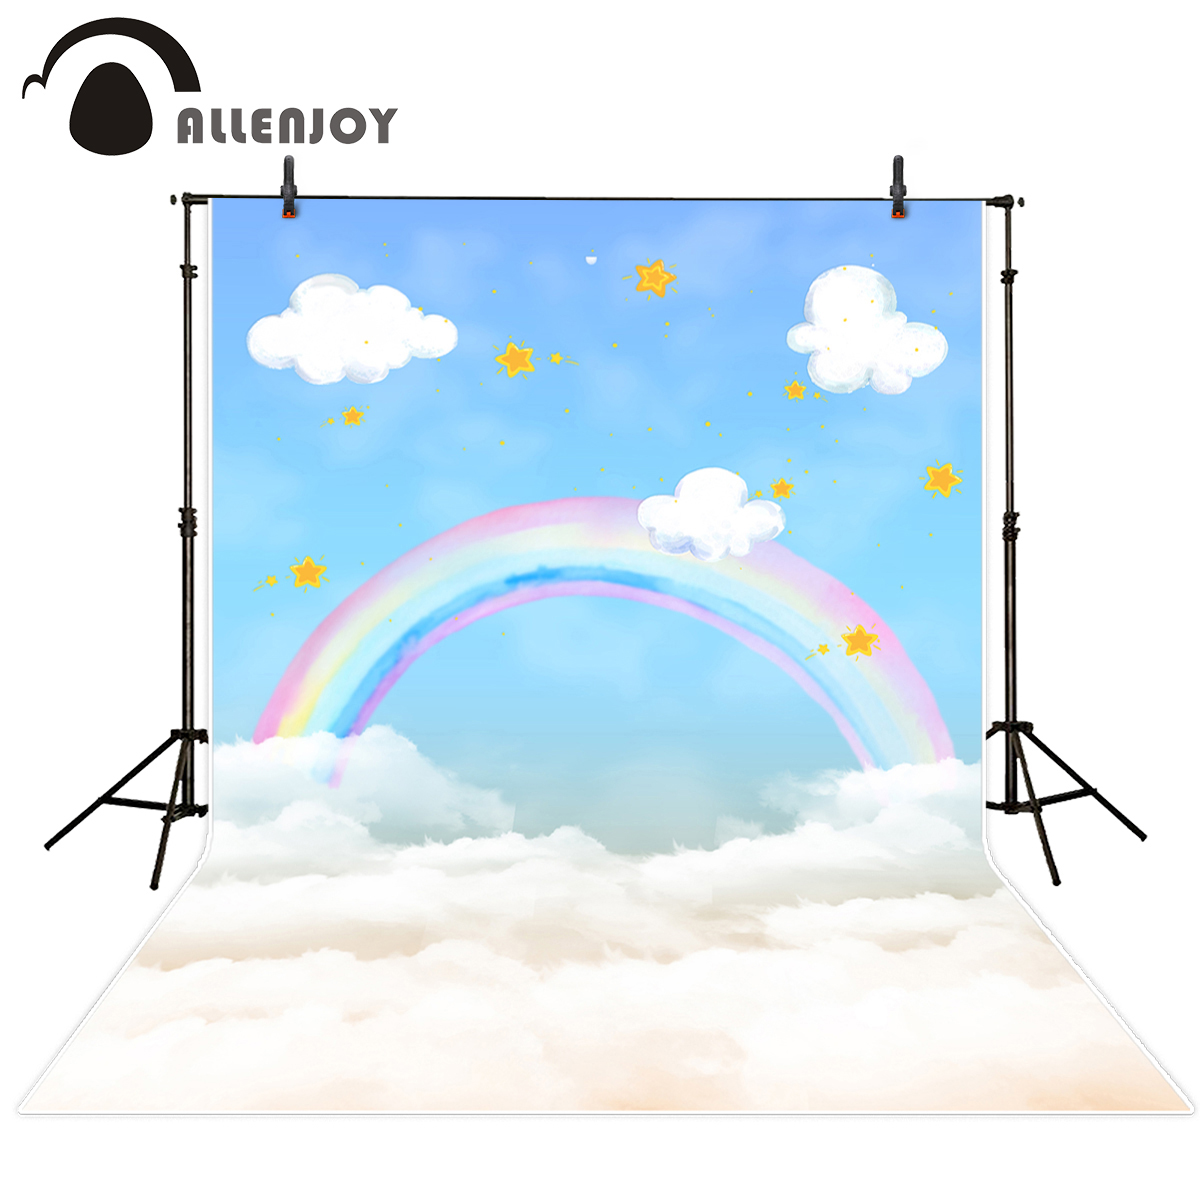 Allenjoy photography backdrops rainbow Clouds stars lovely backgrounds for children baby newborn photo backdrop Backgrounds 600cm 300cm backgrounds the same size and shape princess photography backdrops photo lk 1471